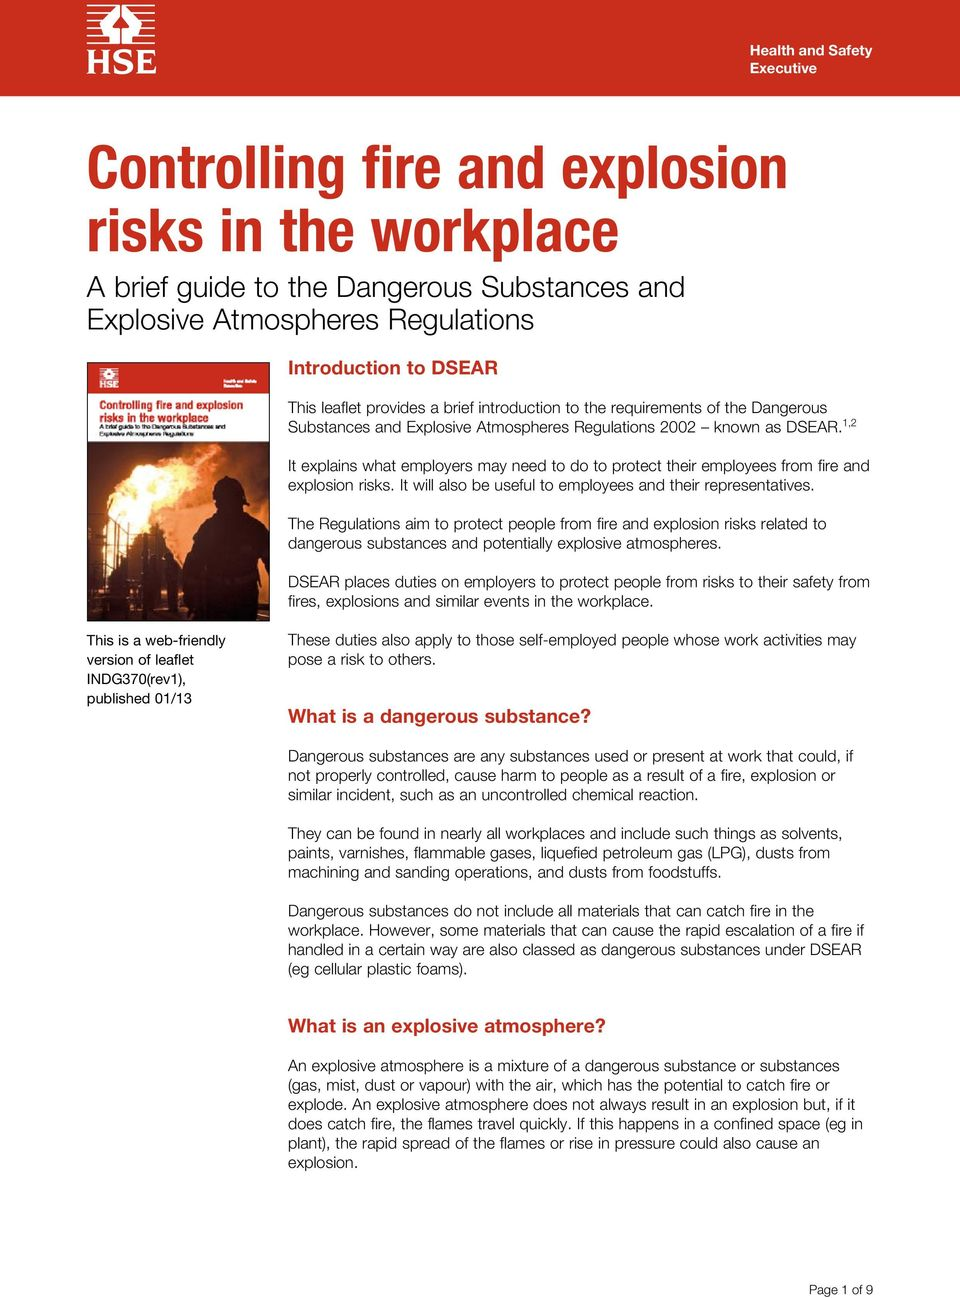 1,2 It explains what employers may need to do to protect their employees from fire and explosion risks. It will also be useful to employees and their representatives.